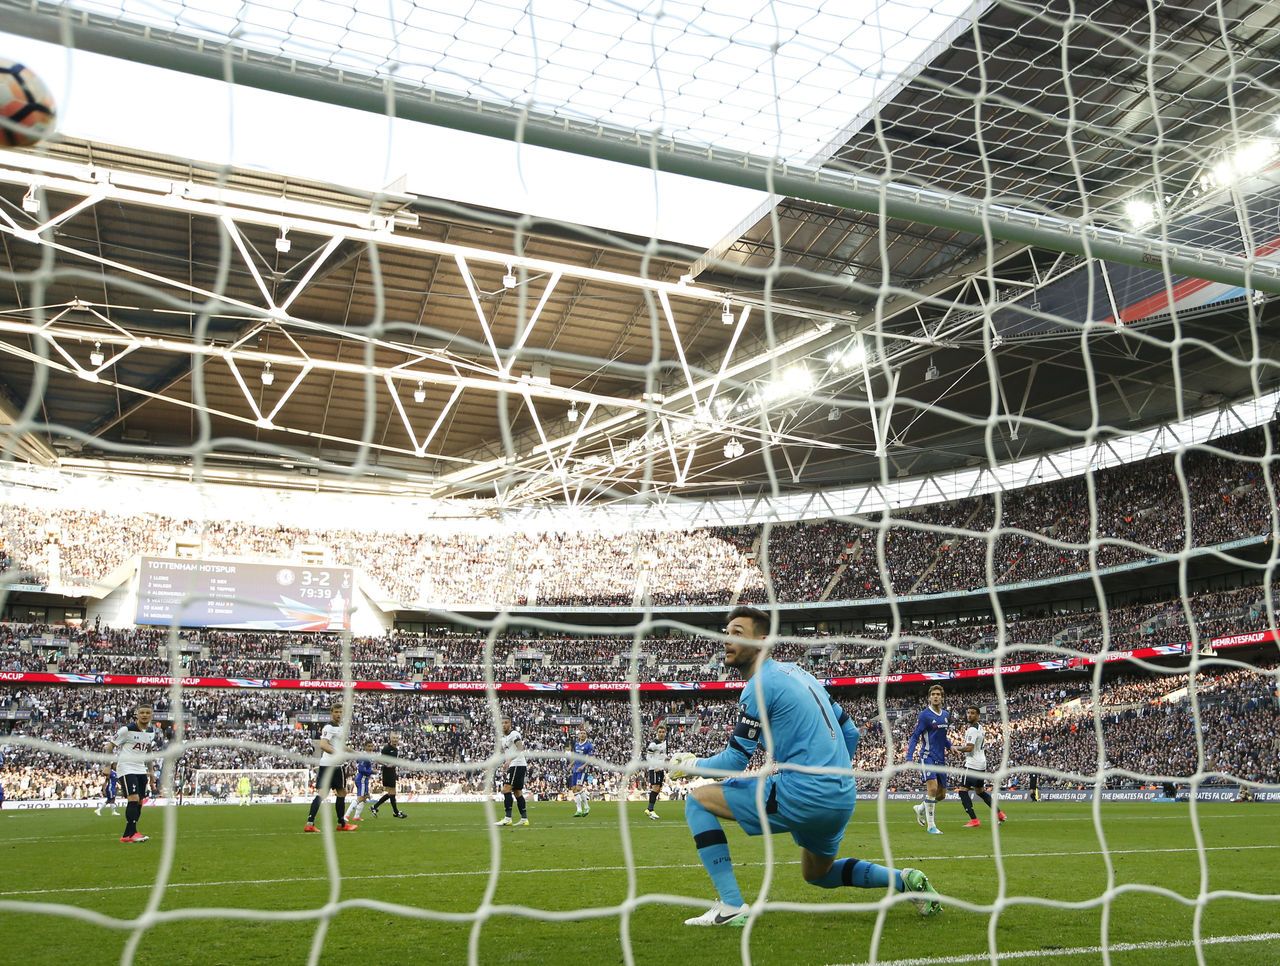 Cropped 2017 04 22t175939z 135885579 mt1aci14783034 rtrmadp 3 soccer england tot che